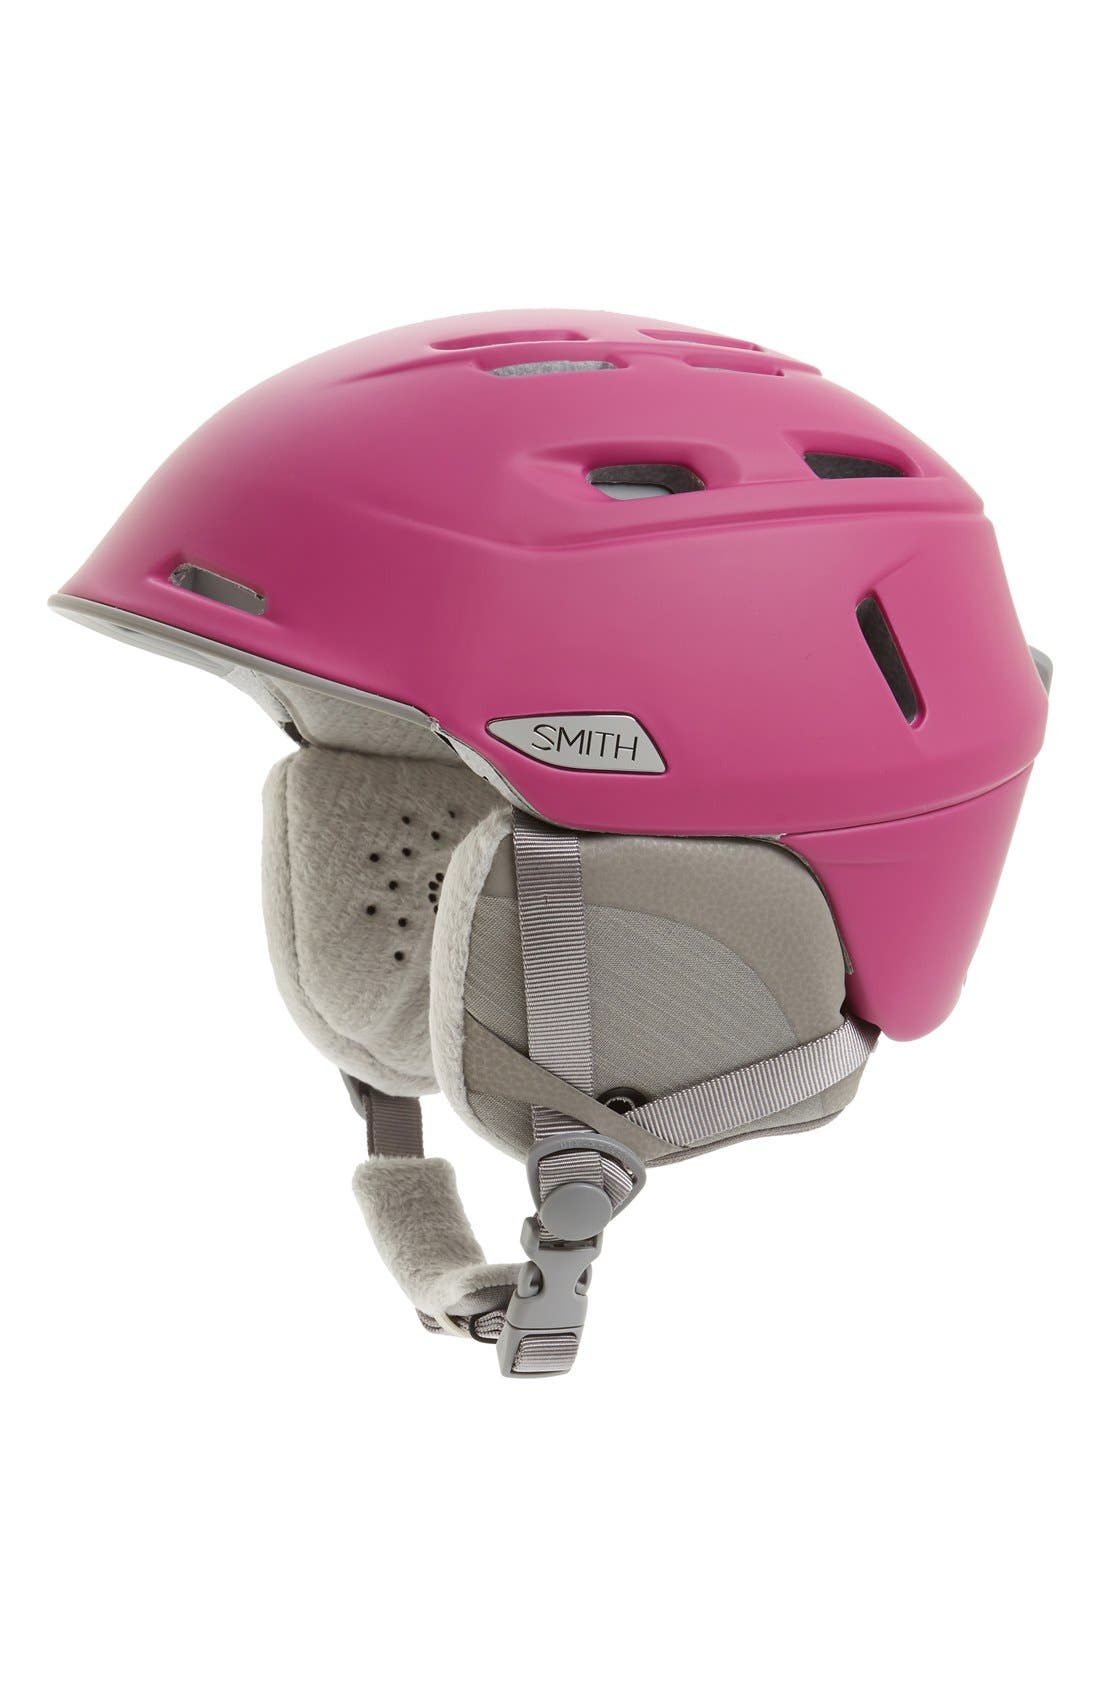 Alternate Image 1 Selected - Smith 'Compass' Snow Helmet